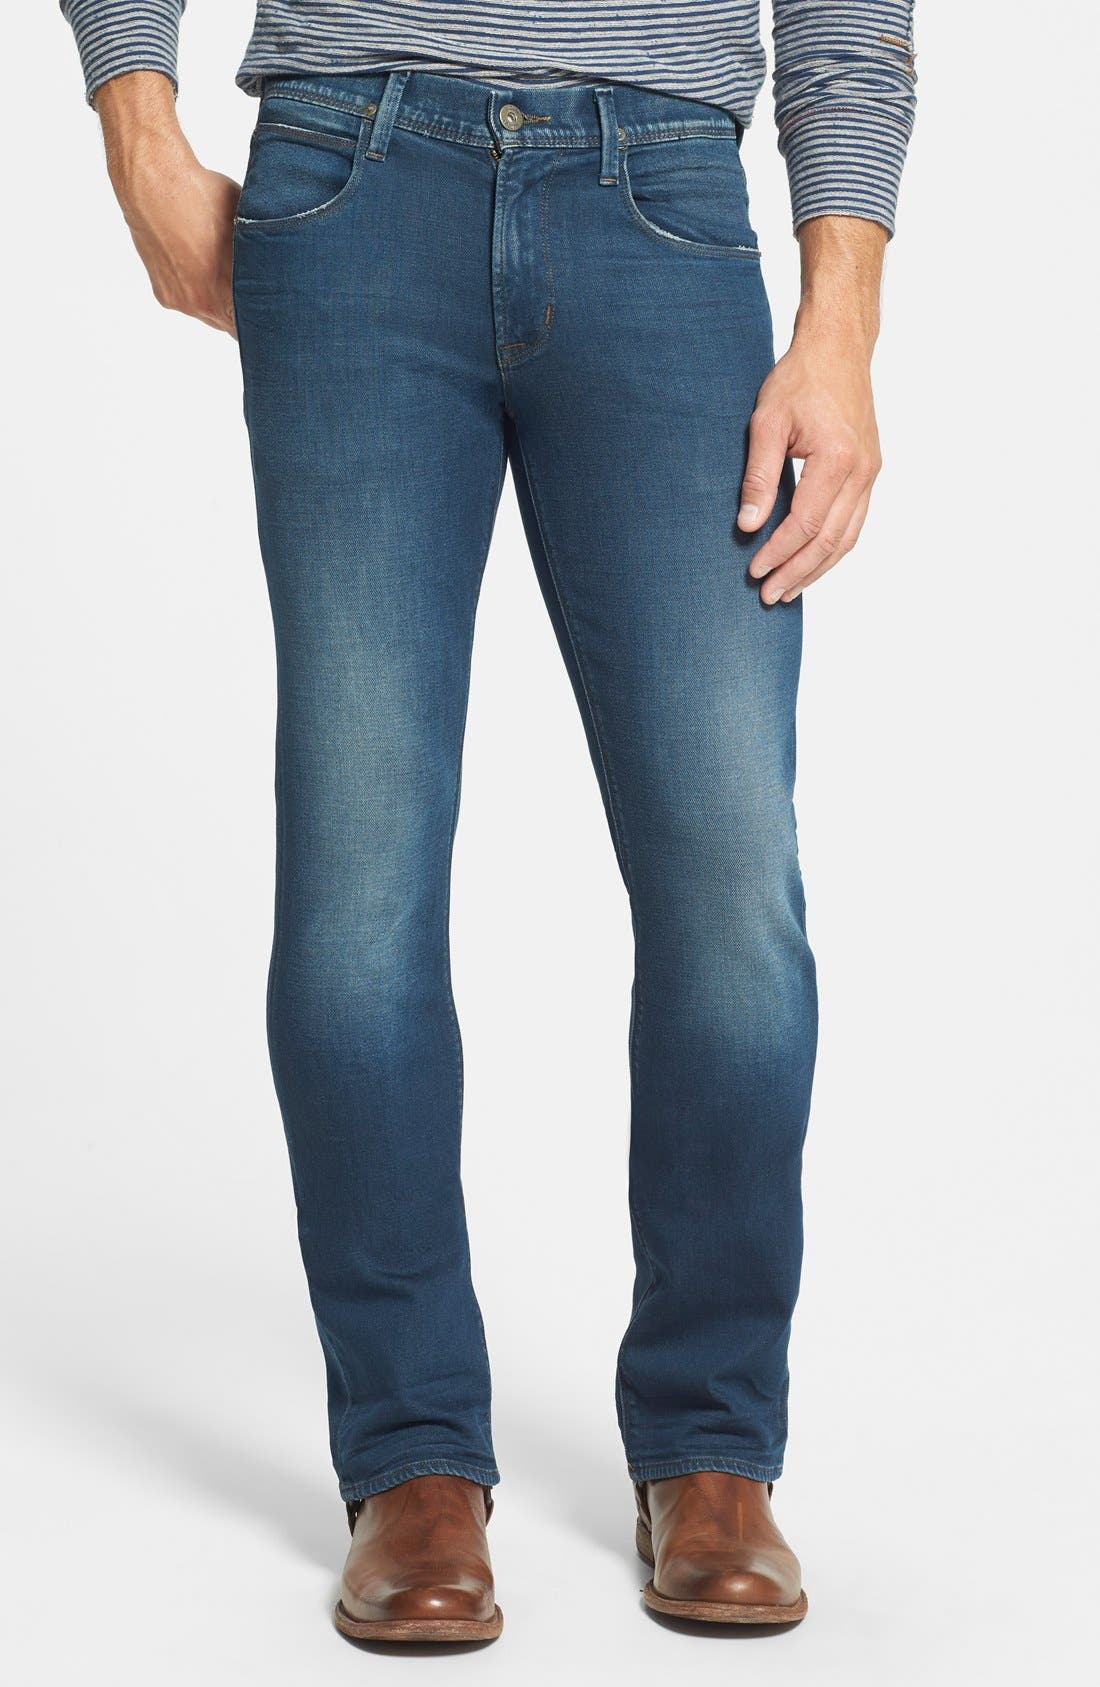 HUDSON JEANS 'Clifton' Bootcut Jeans, Main, color, 403